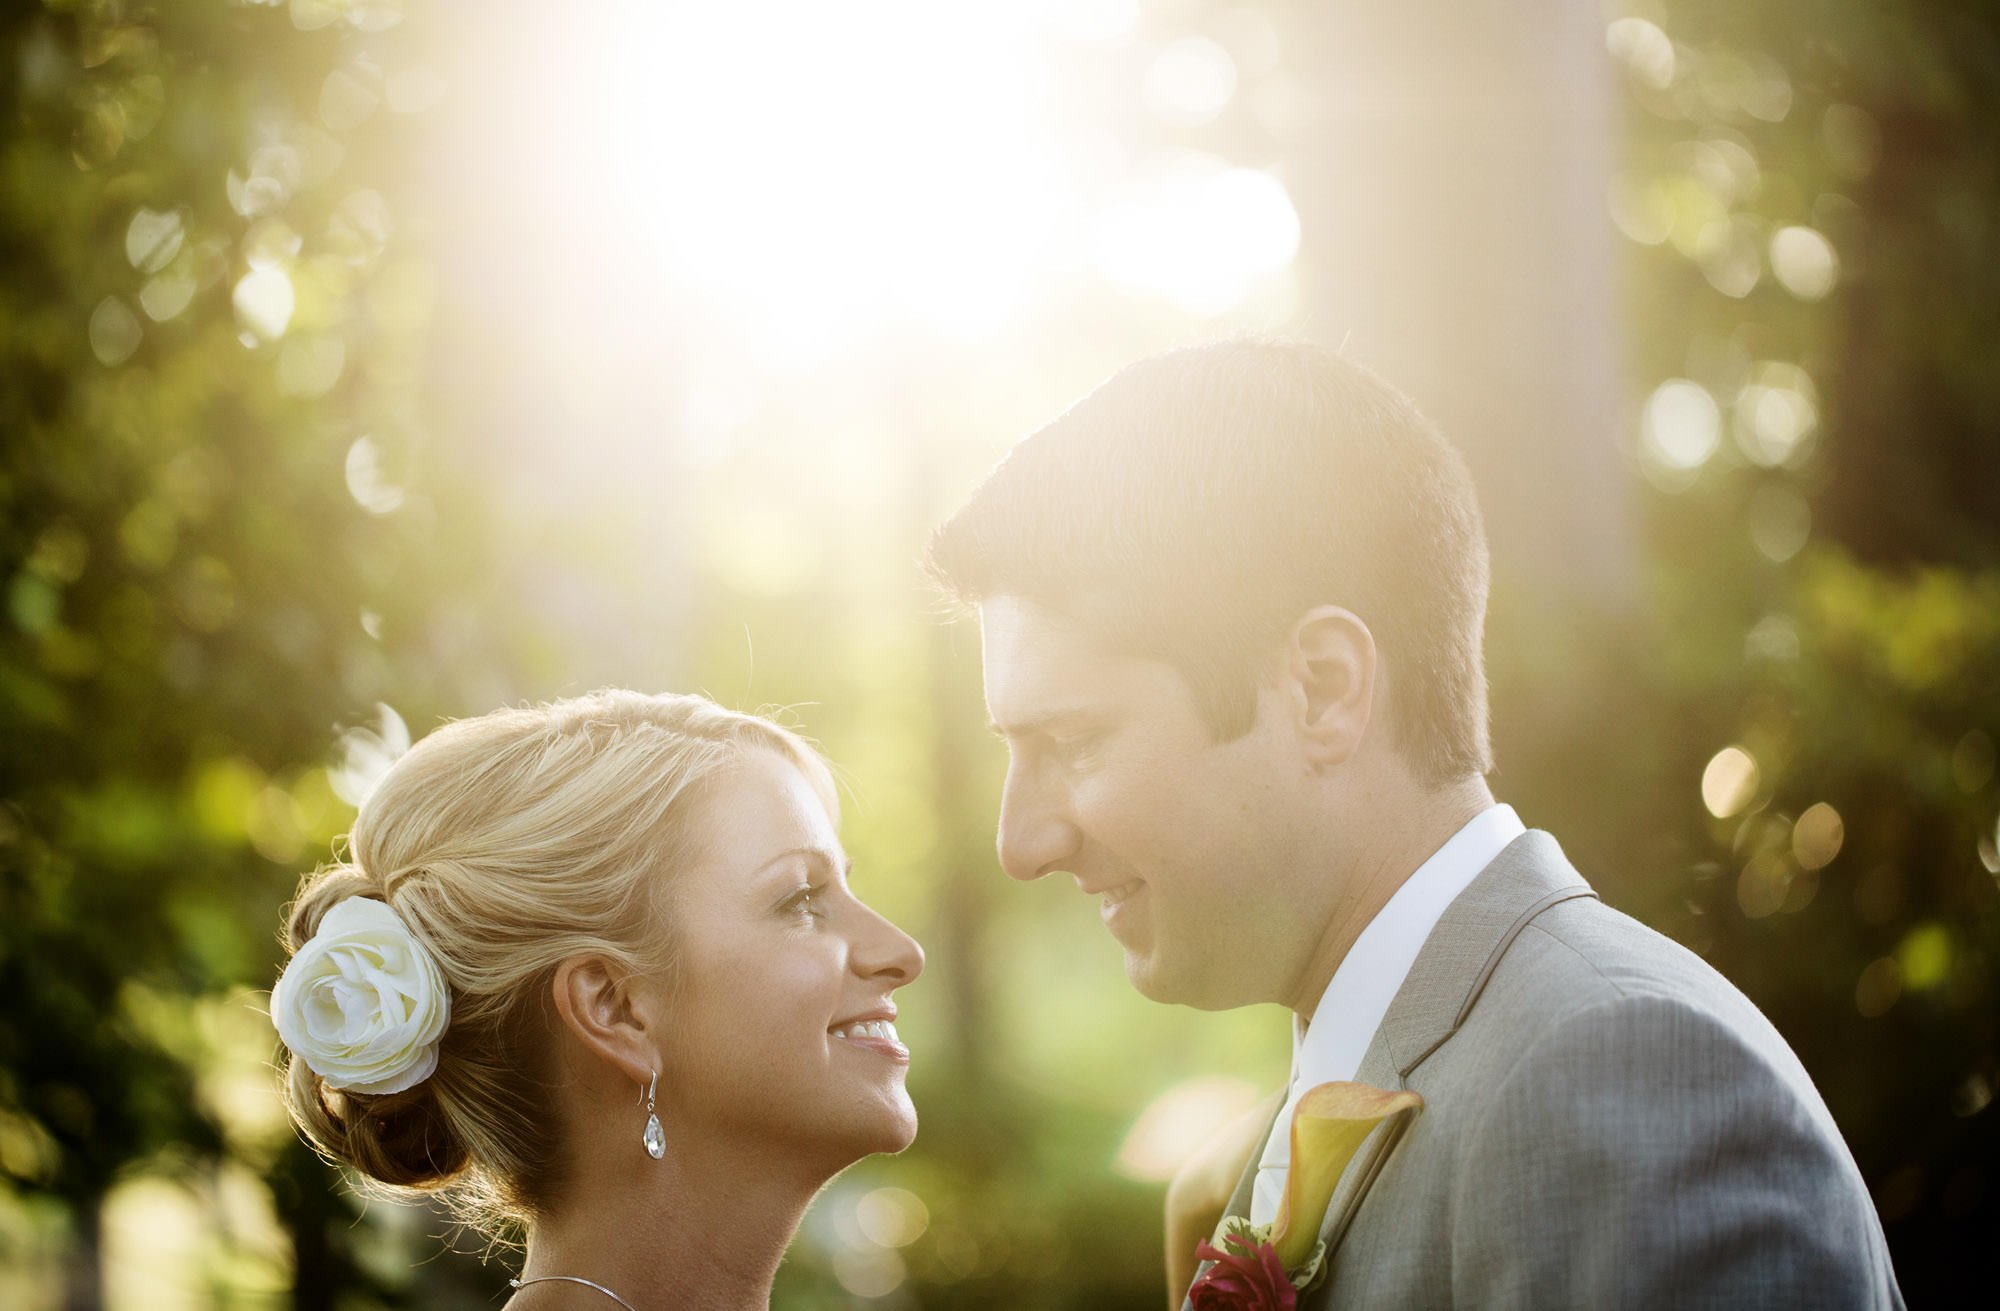 The bride and groom smile during sunset at their Nittany Lion Inn wedding.